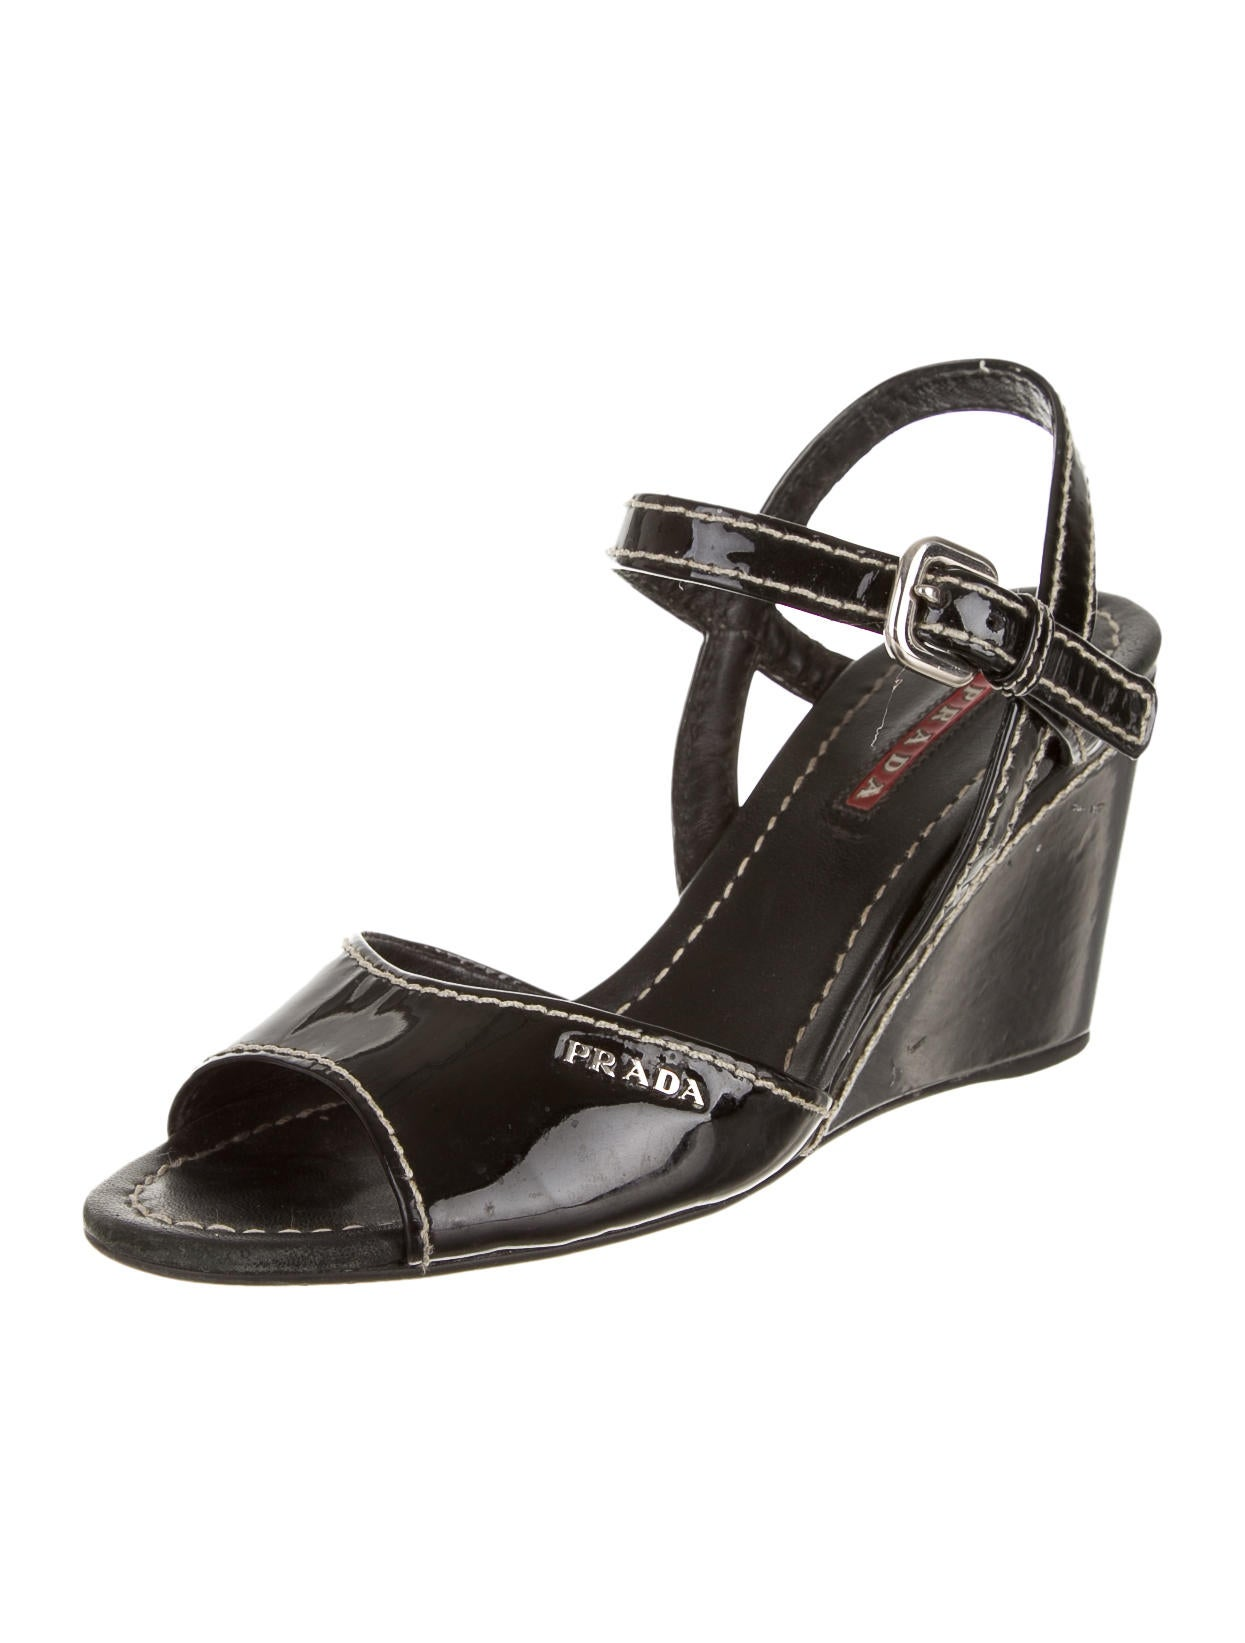 prada sport wedges shoes wpr25648 the realreal